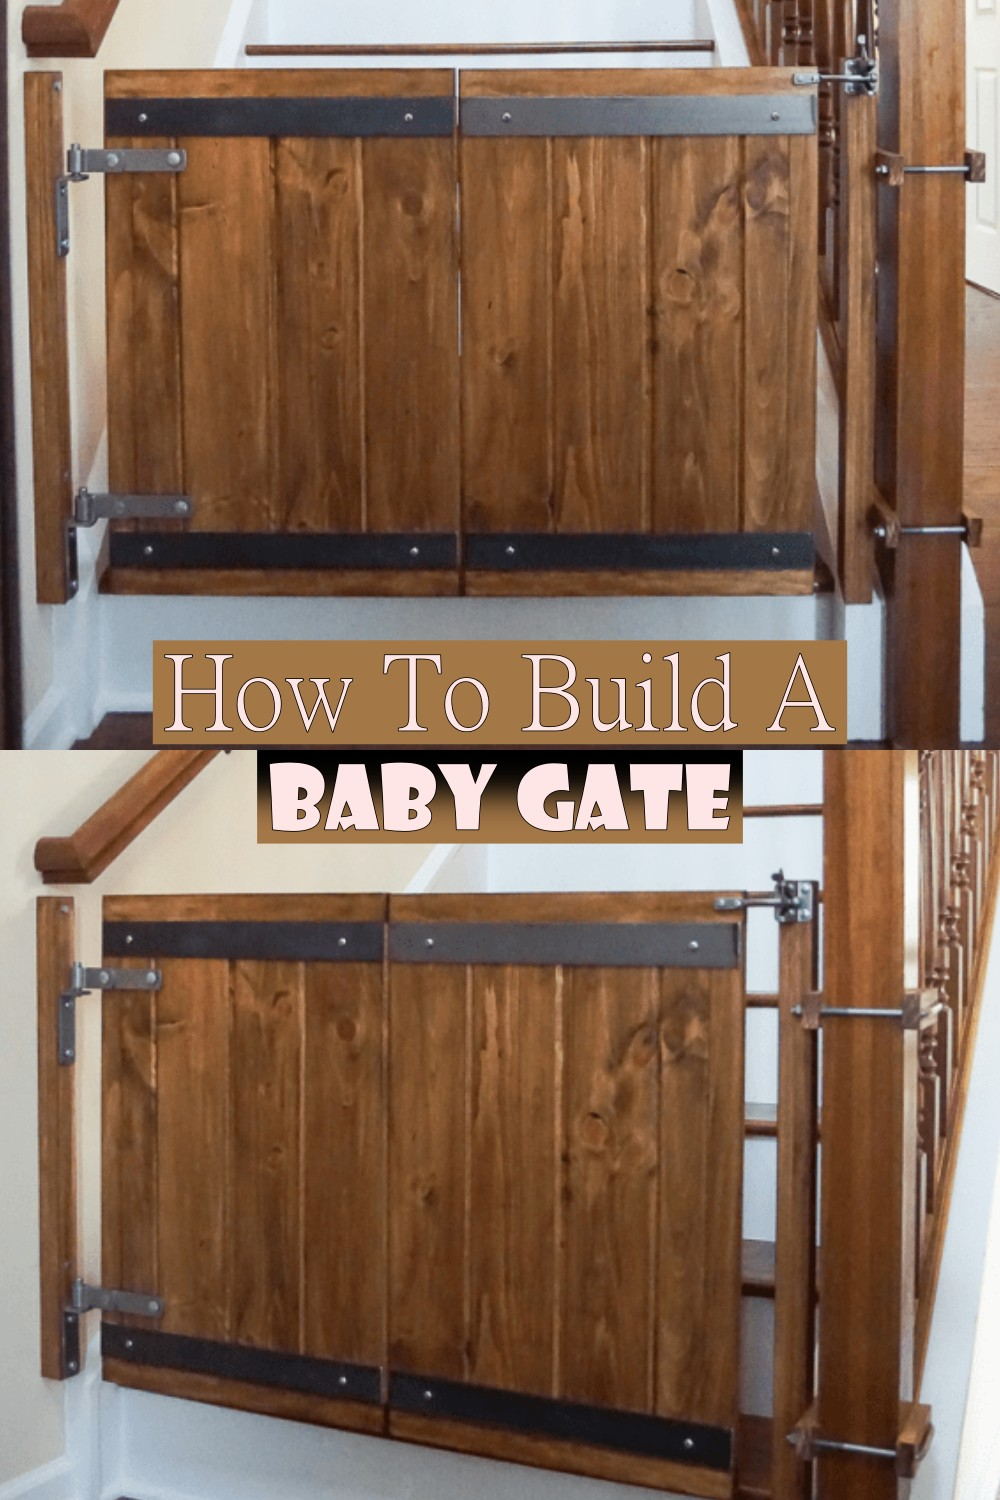 How To Build A Baby Gate